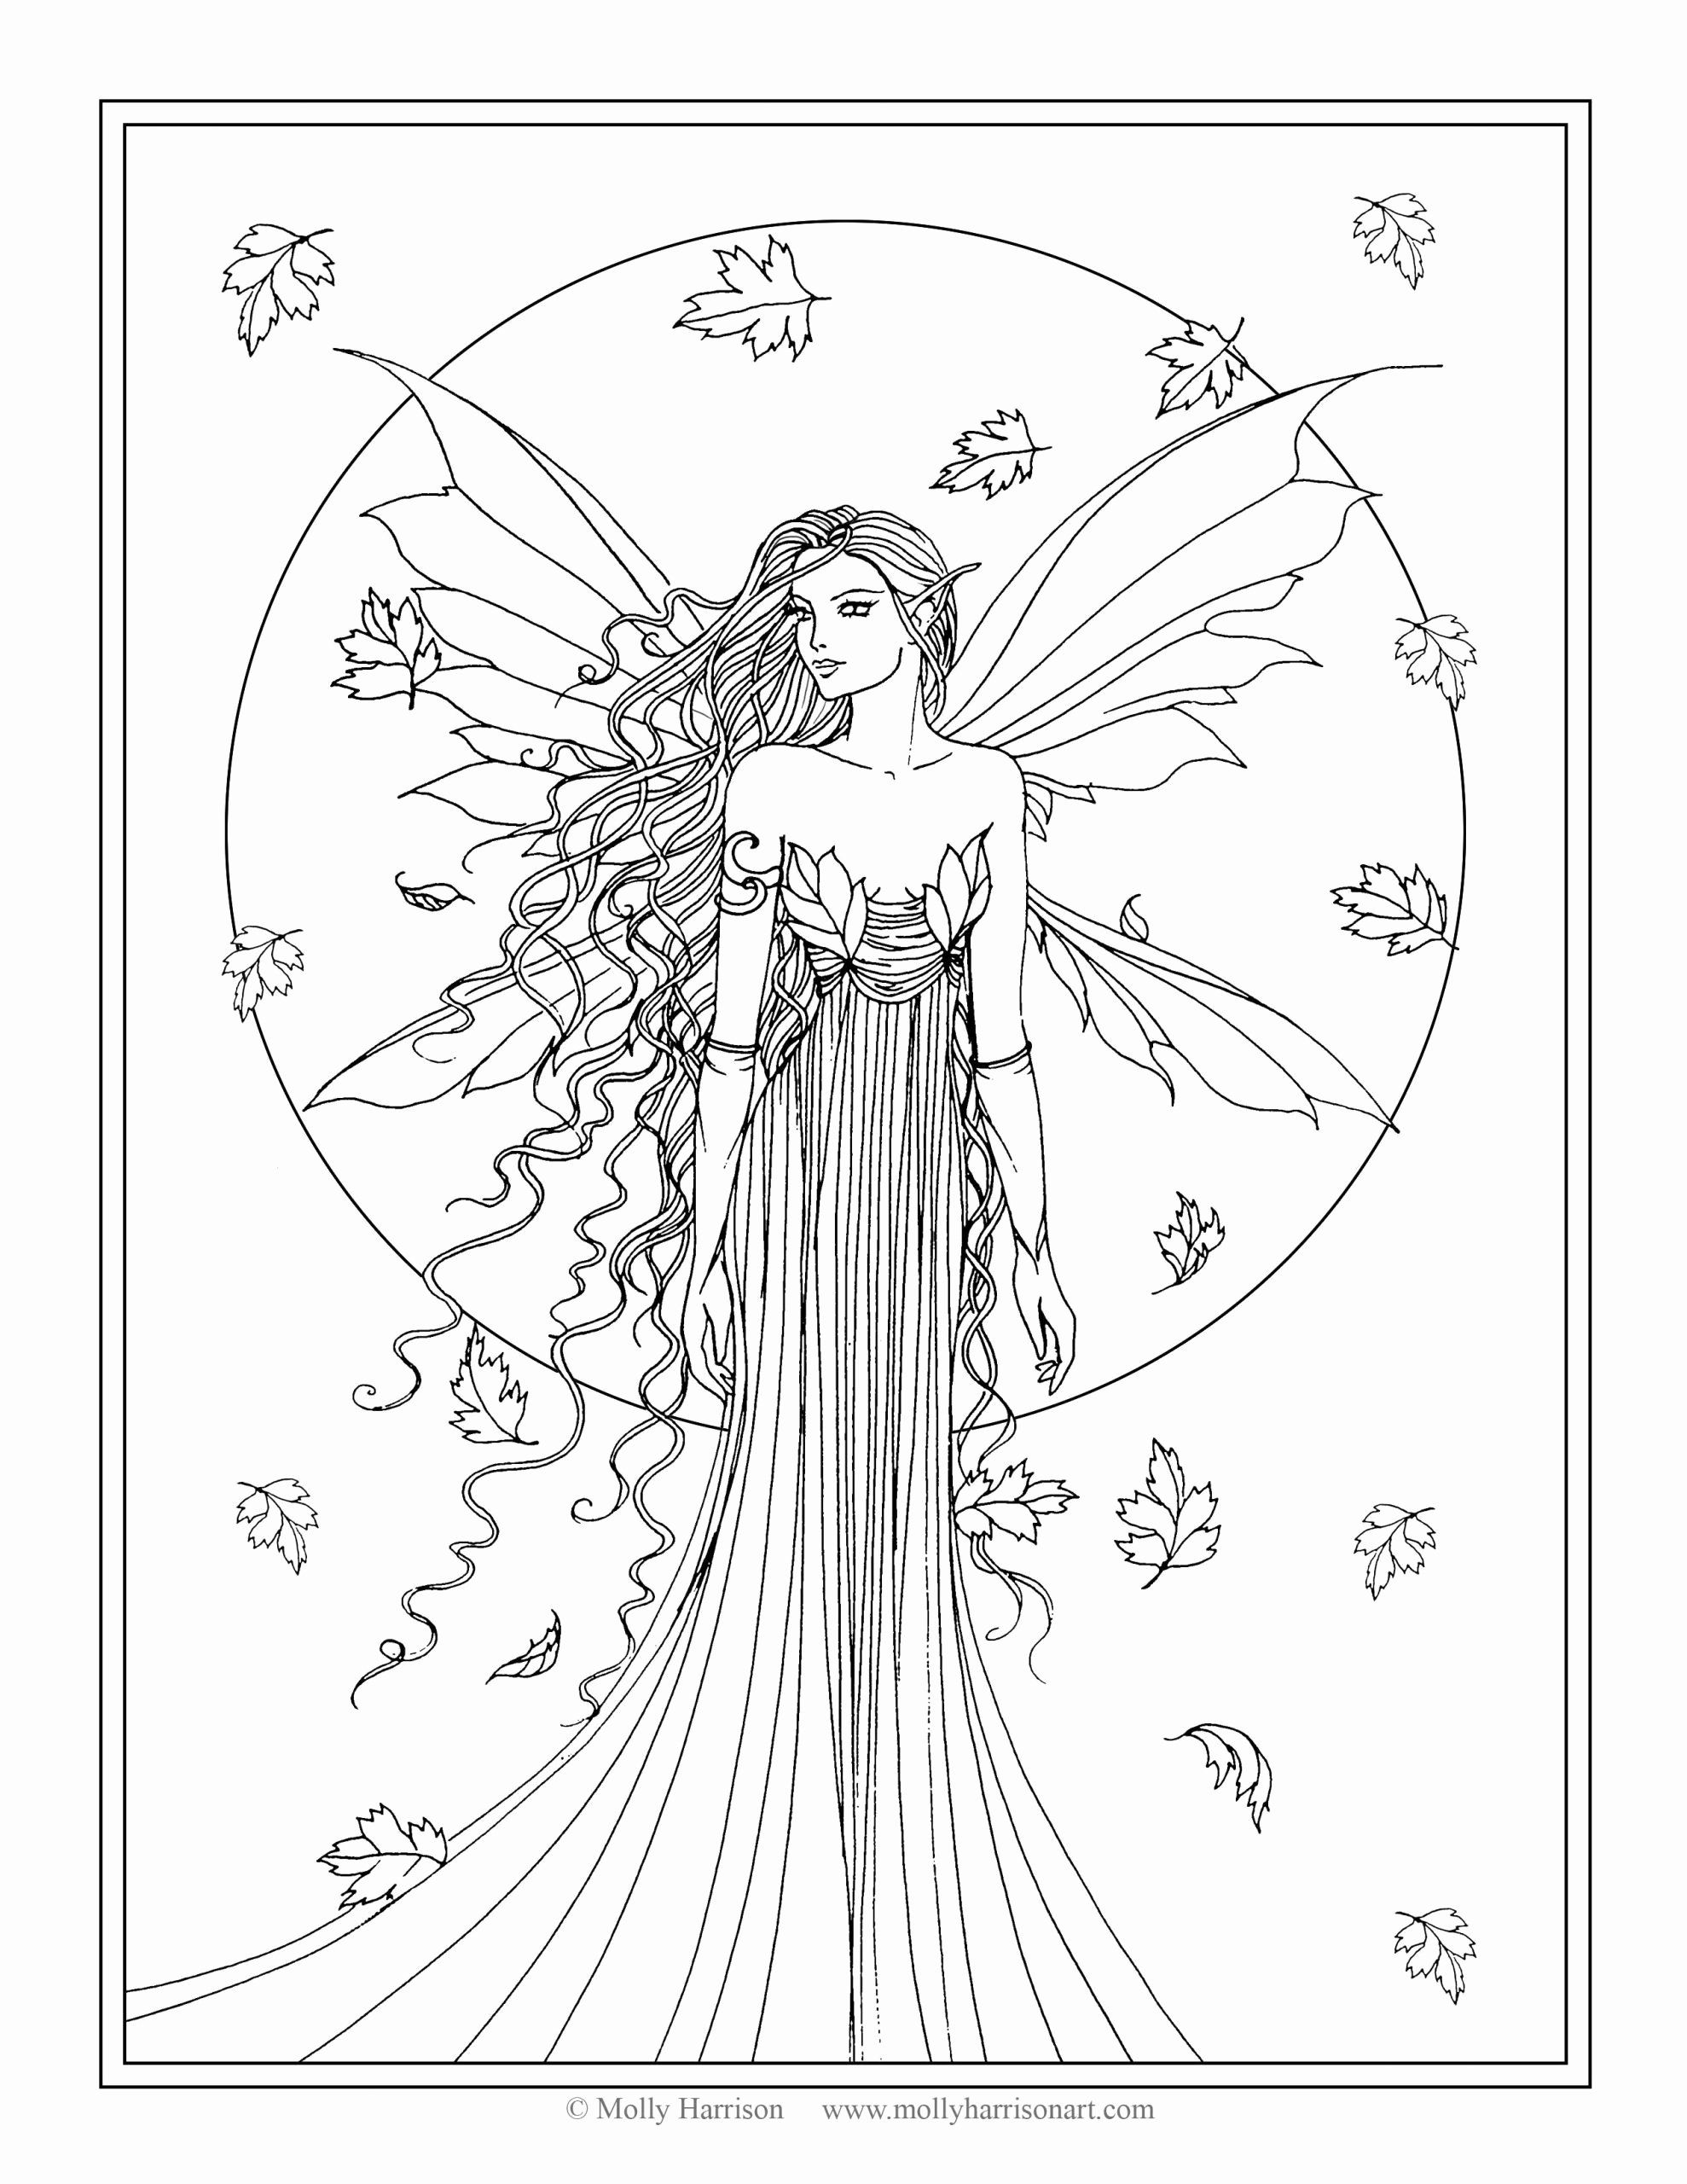 Number 13 Coloring Pages Inspirational Top 13 Exceptional Coloring Sheets Fairy Pages For Adults In 2020 Fairy Coloring Book Fairy Coloring Pages Fairy Coloring